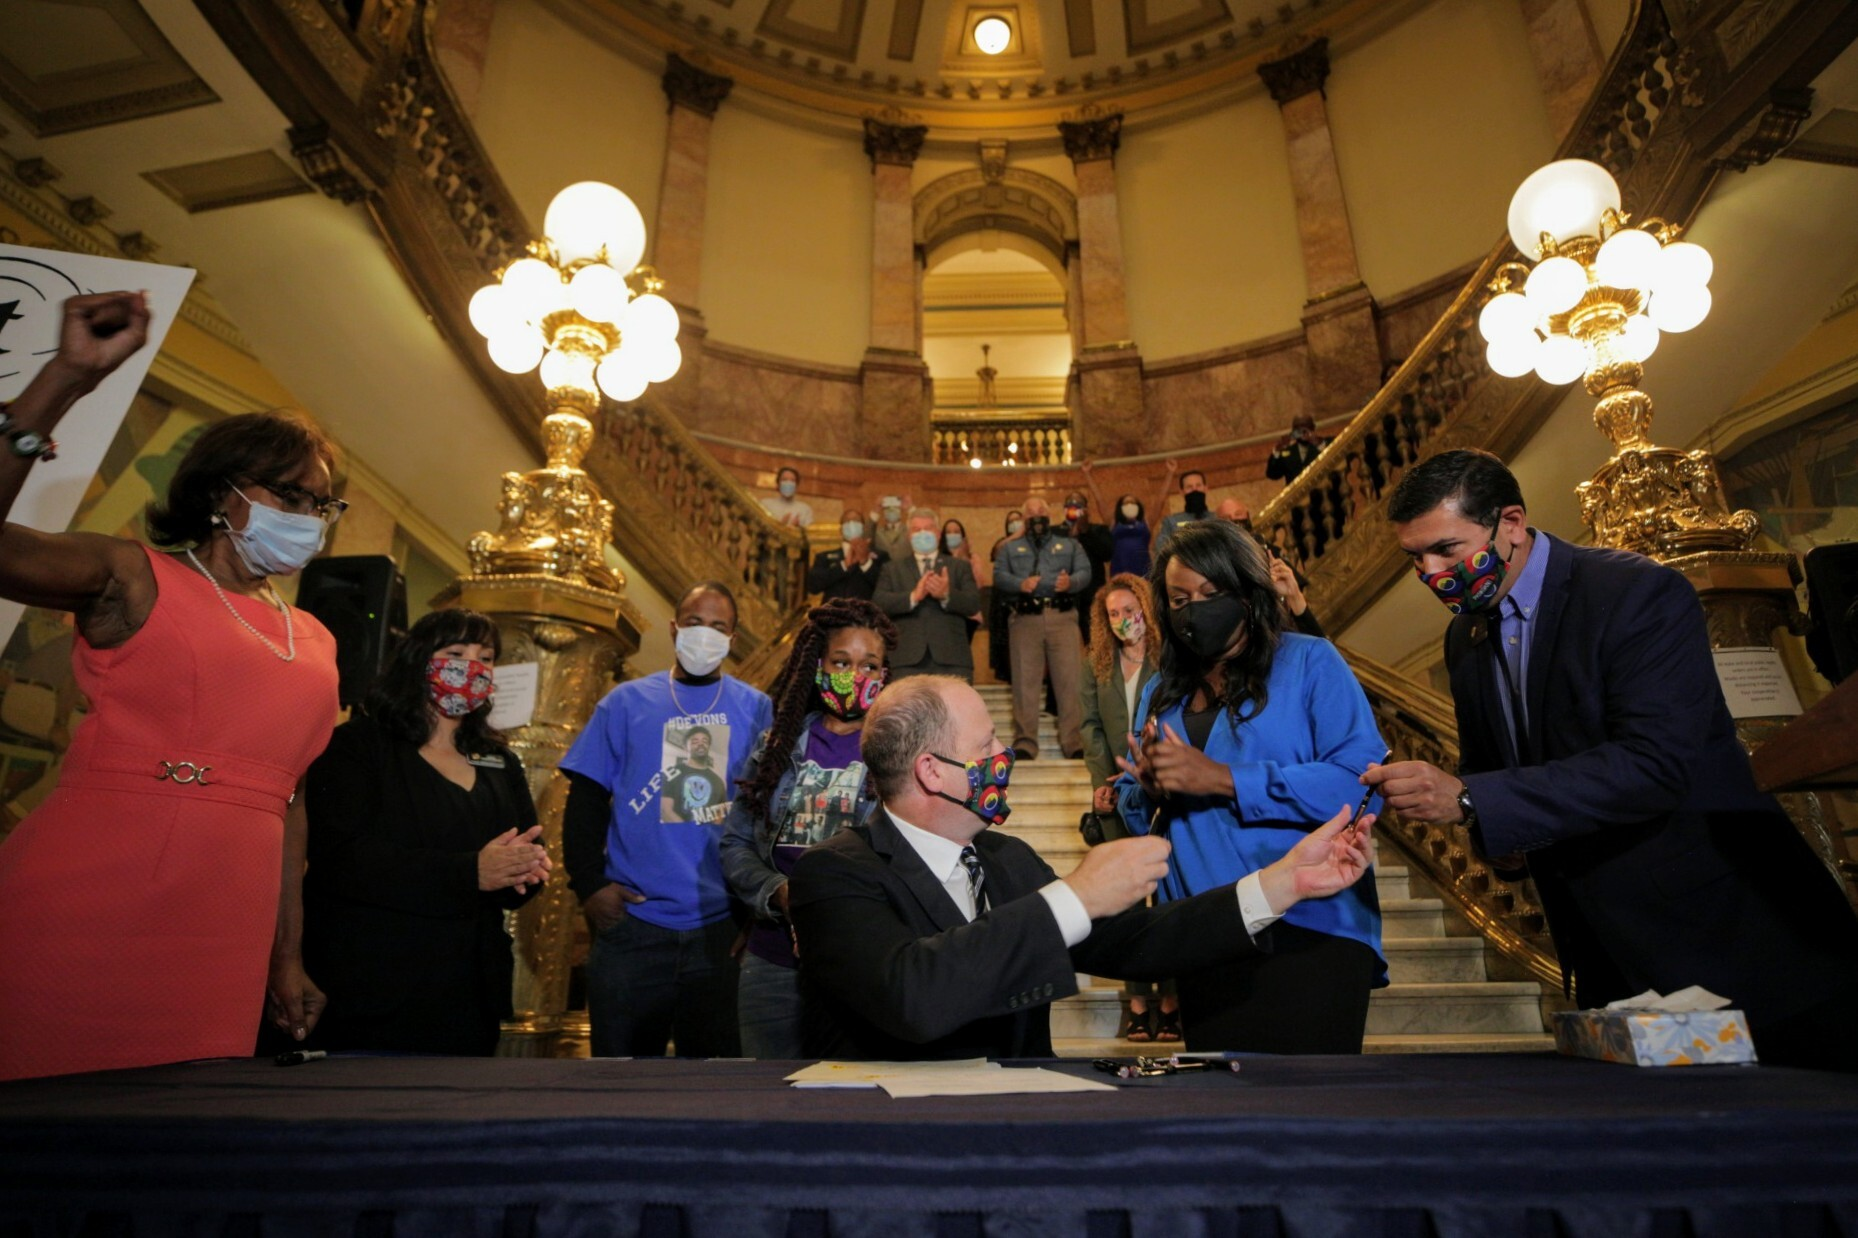 Gov. Jared Polis hands ceremonial pens to bill sponsors Rep. Leslie Herod, D-Denver and Senate President Leroy Garcia, D-Pueblo after signing law enforcement reform legislation at the State Capitol Friday